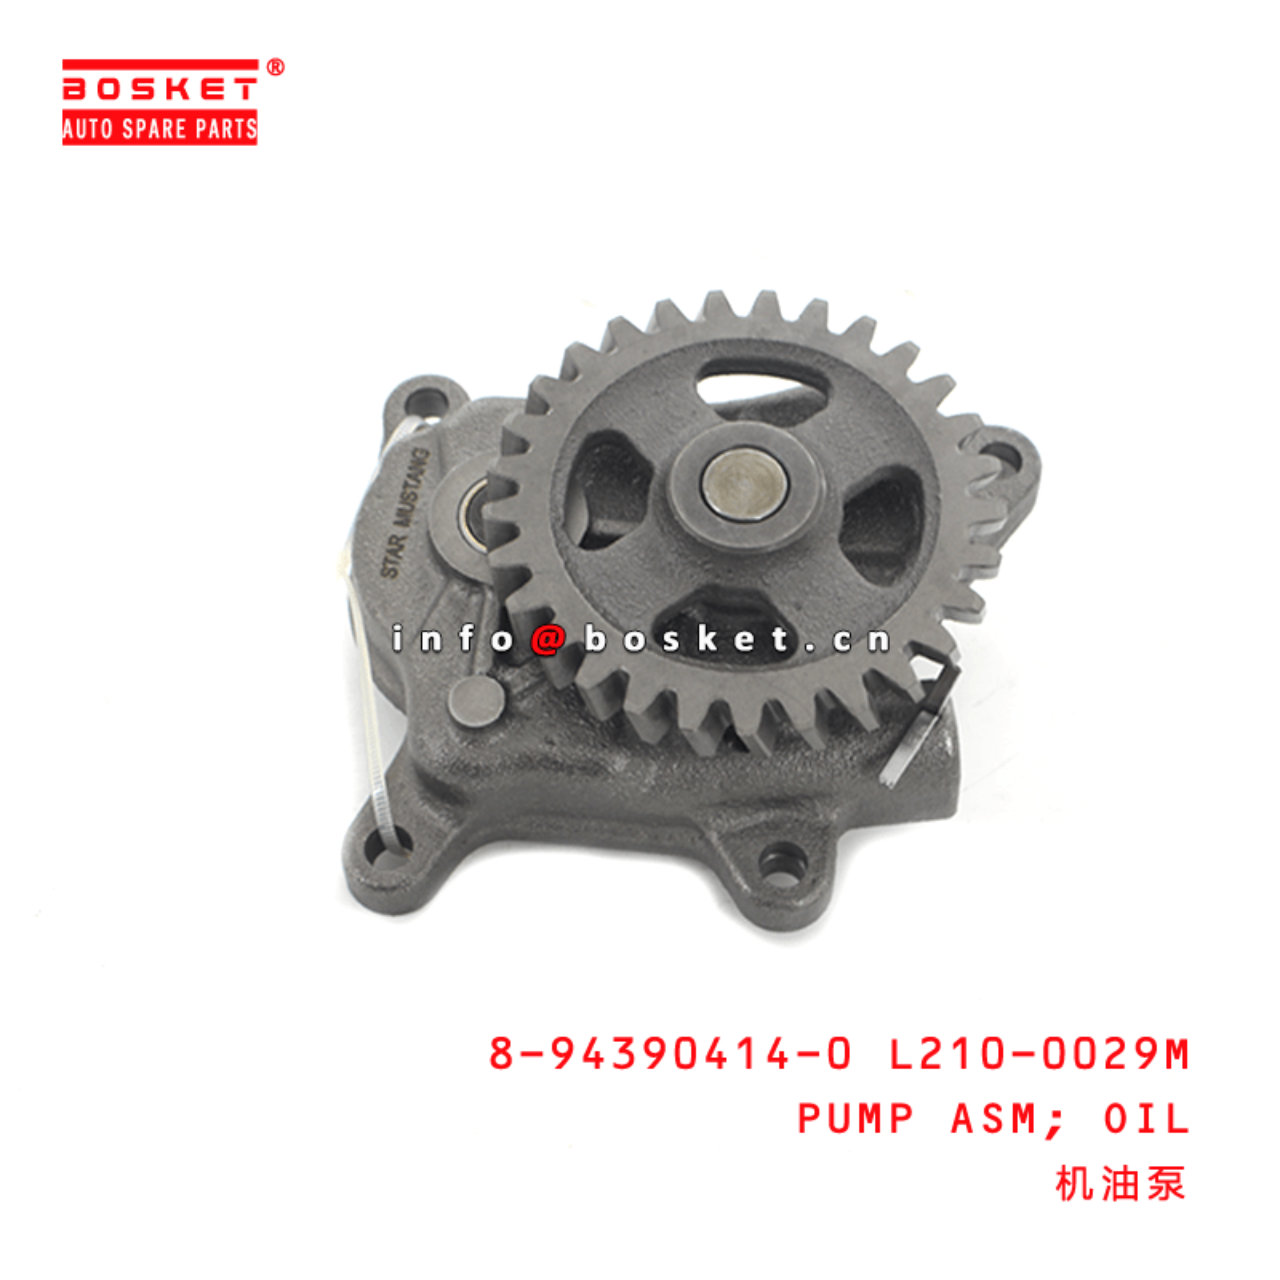 8-94390414-0 L210-0029M Oil Pump Assembly 8943904140 L2100029M Suitable for ISUZU XY 6HK1